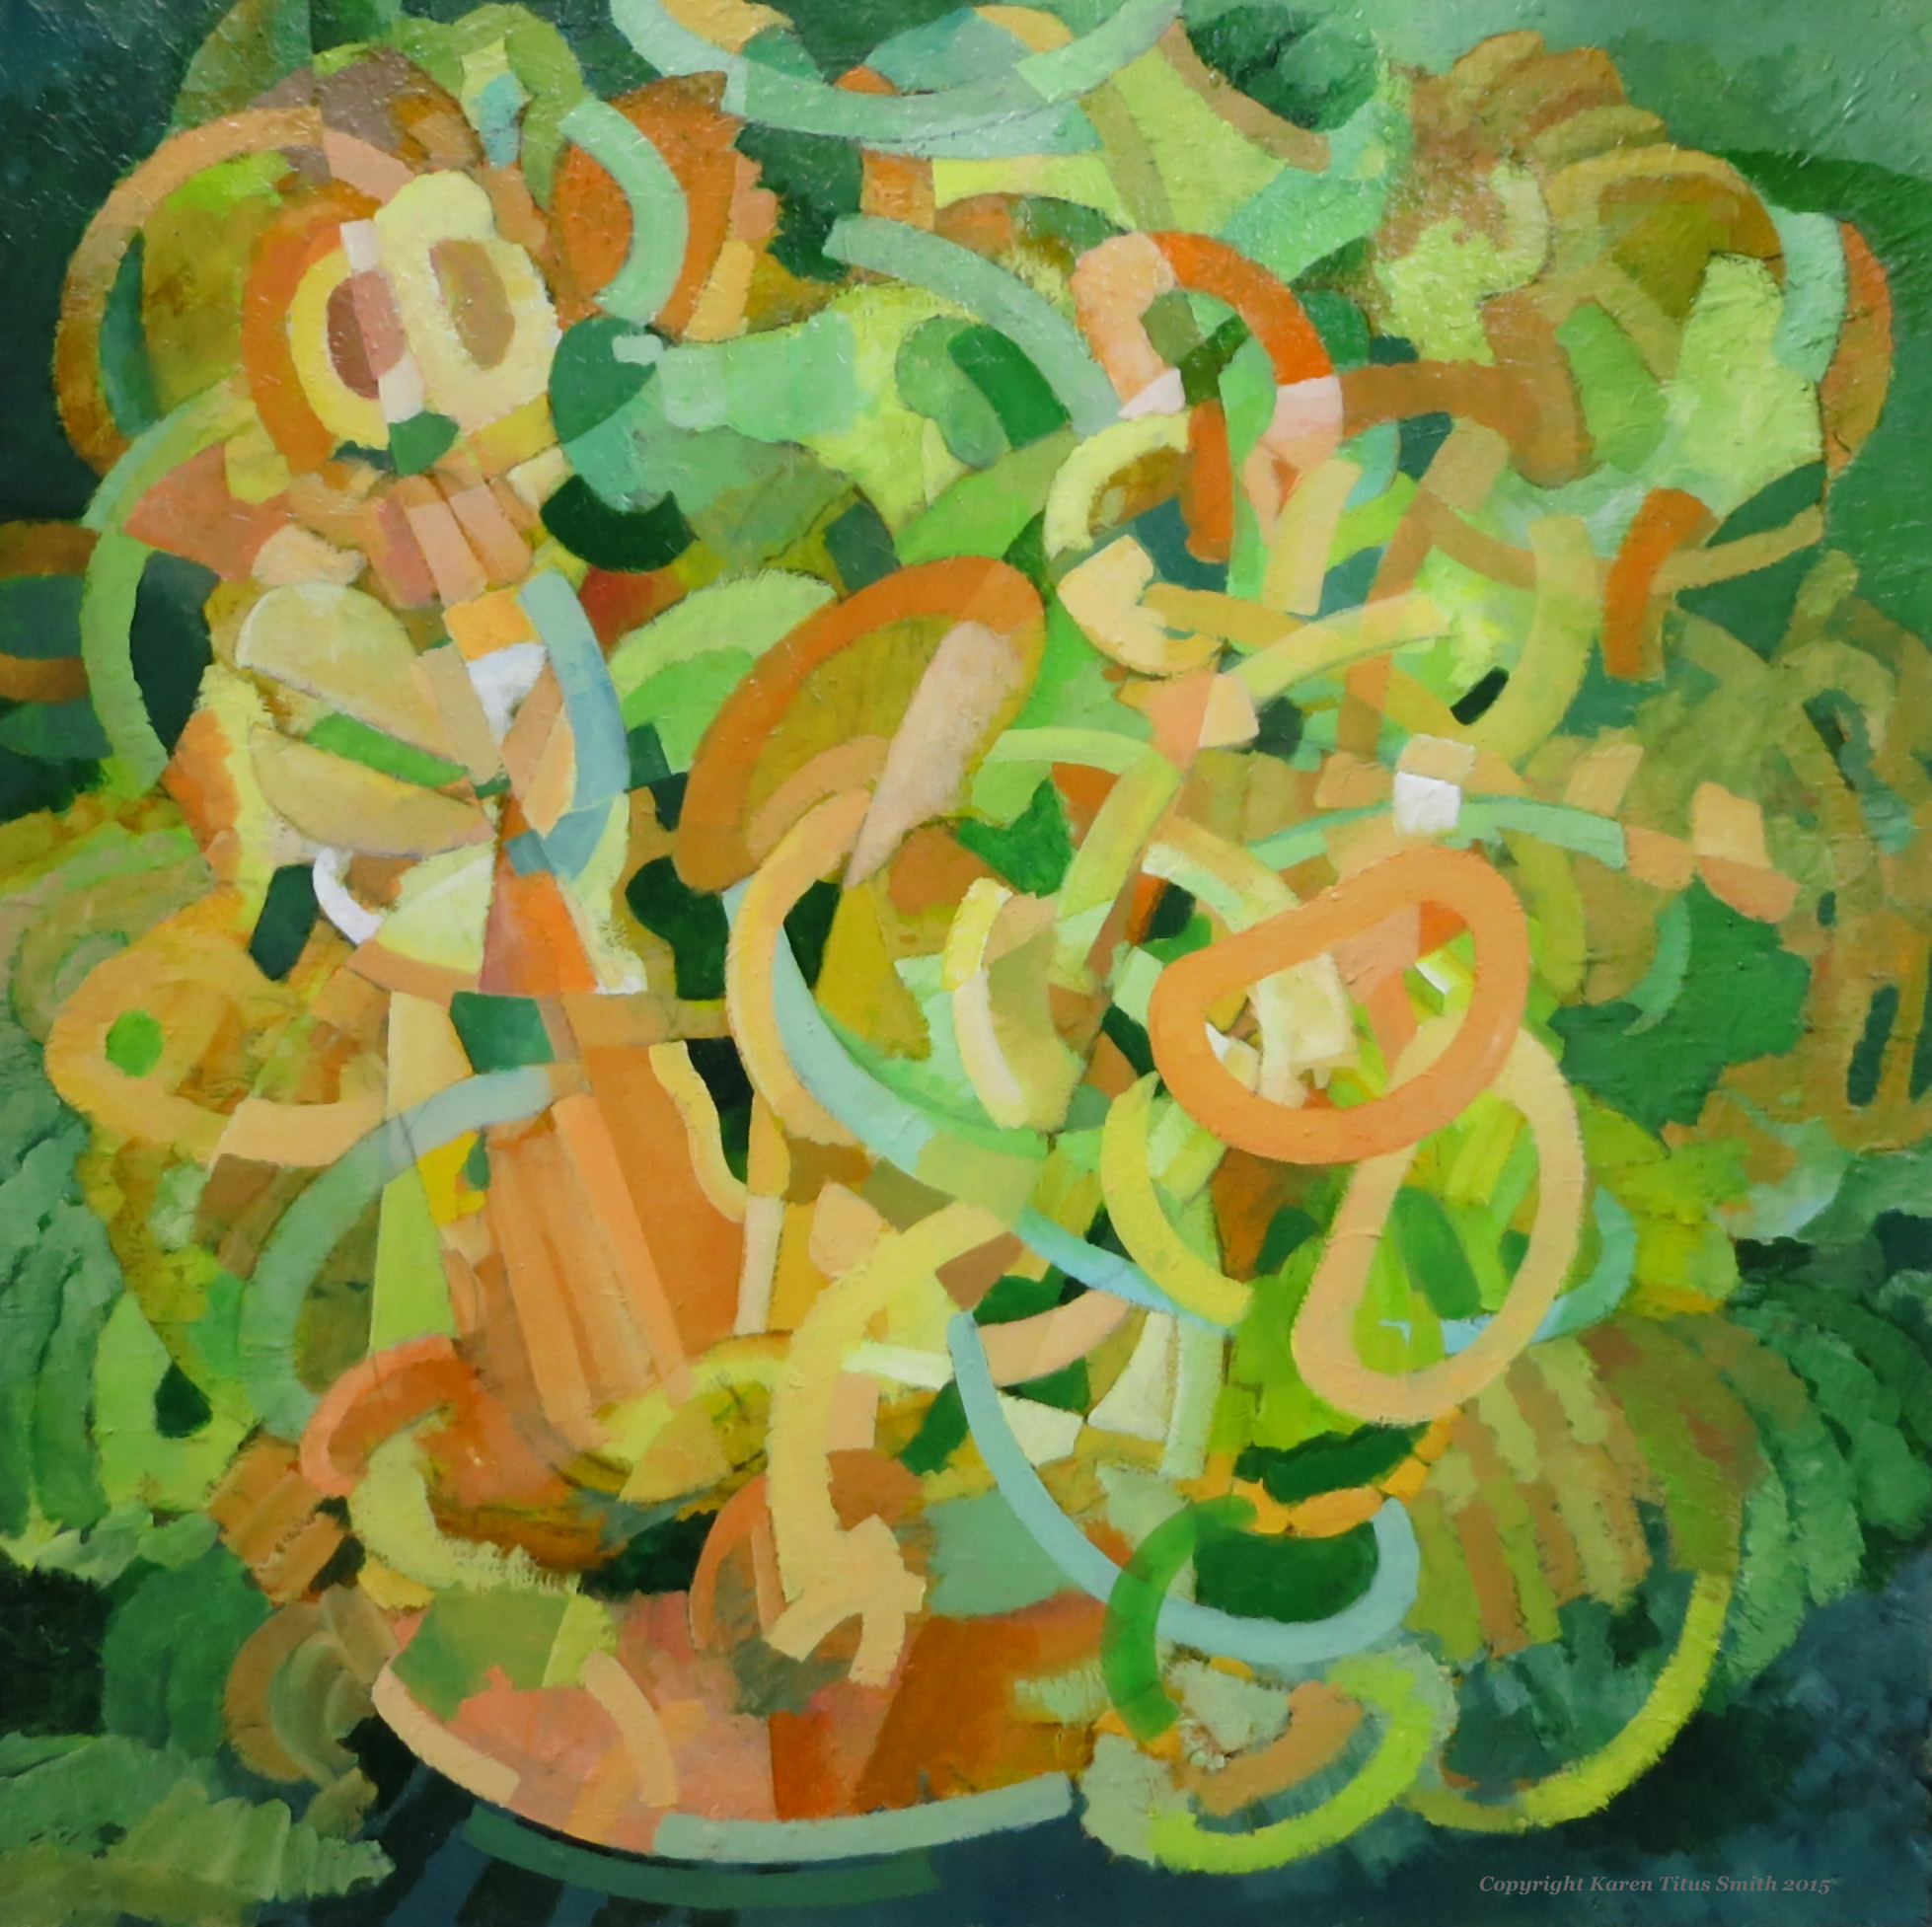 "Karen Titus Smith, AB Plant, Acrylic on canvas, 42"" x 42"""